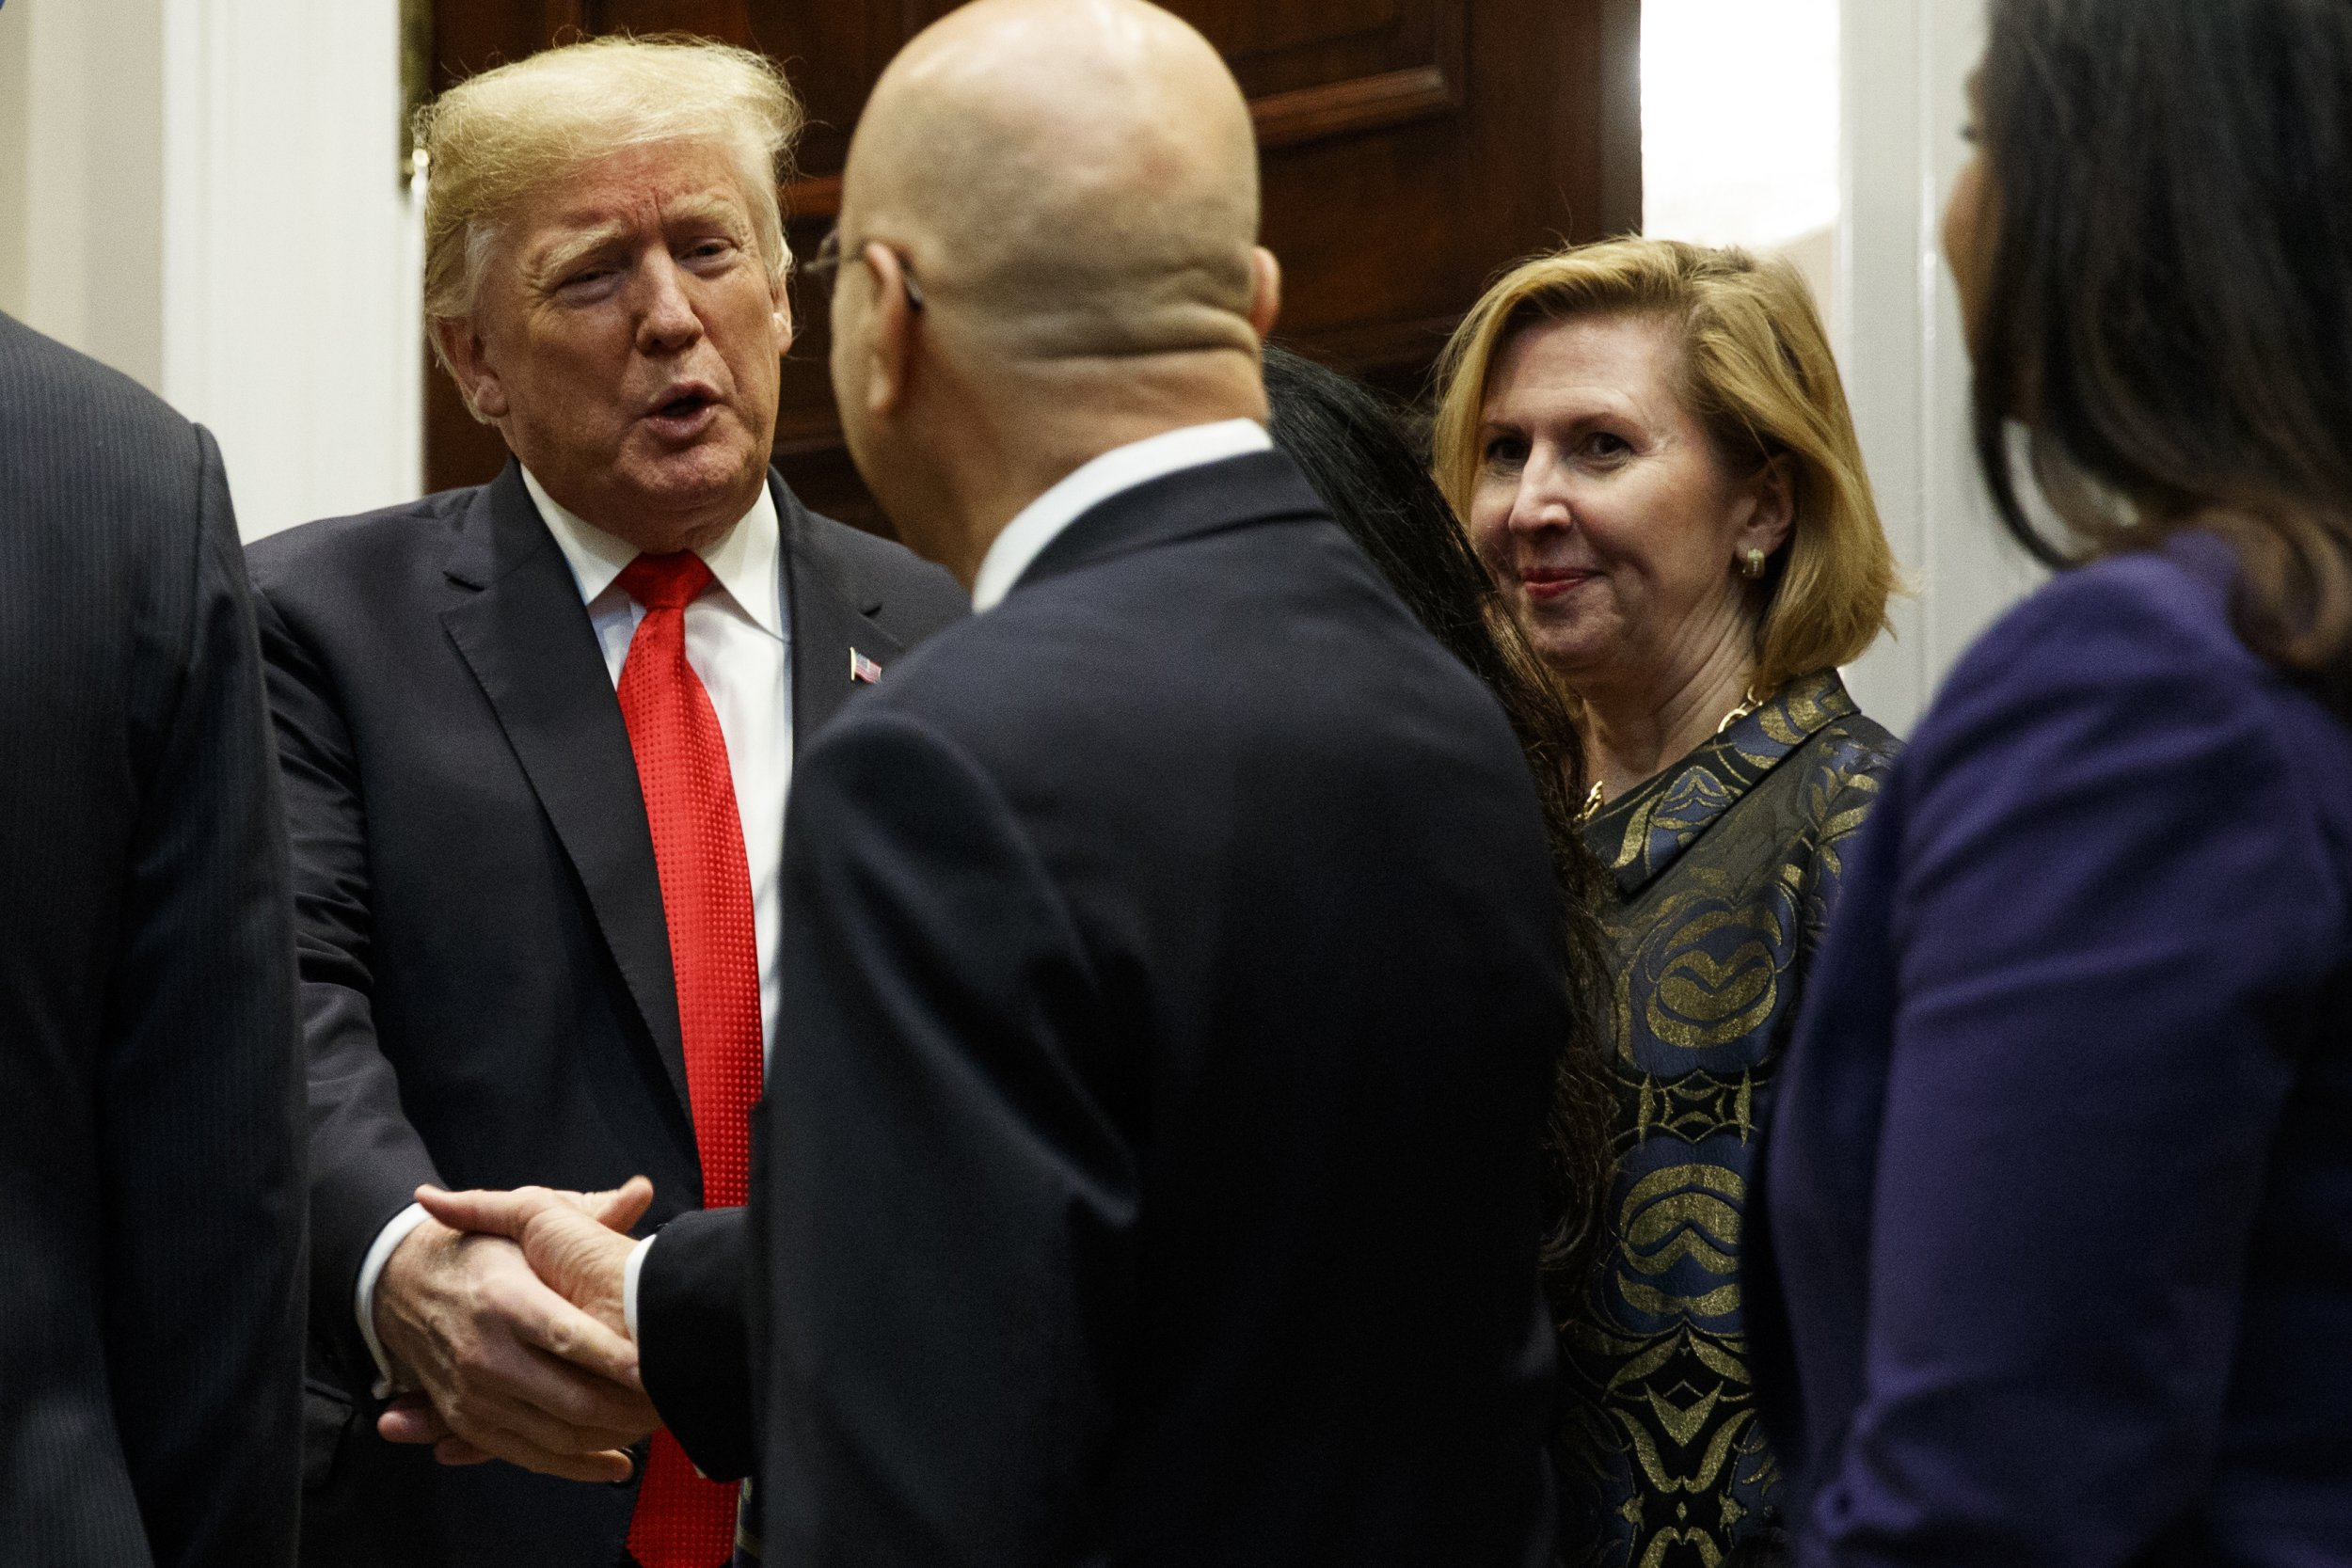 Deputy National Security Adviser Mira Ricardel, right, watches as President Donald Trump arrives for a Diwali ceremonial lighting of the Diya in the Roosevelt Room of the White House, Tuesday, Nov. 13, 2018, in Washington. In an extraordinary move, first lady Melania Trump is publicly calling for the dismissal of Ricardel. After reports circulated that the president had decided to remove Ricardel, the first lady???s spokeswoman issued a statement saying: ???It is the position of the Office of the First Lady that she no longer deserves the honor of serving in this White House.??? Ricardel is national security adviser John Bolton???s deputy. (AP Photo/Evan Vucci)